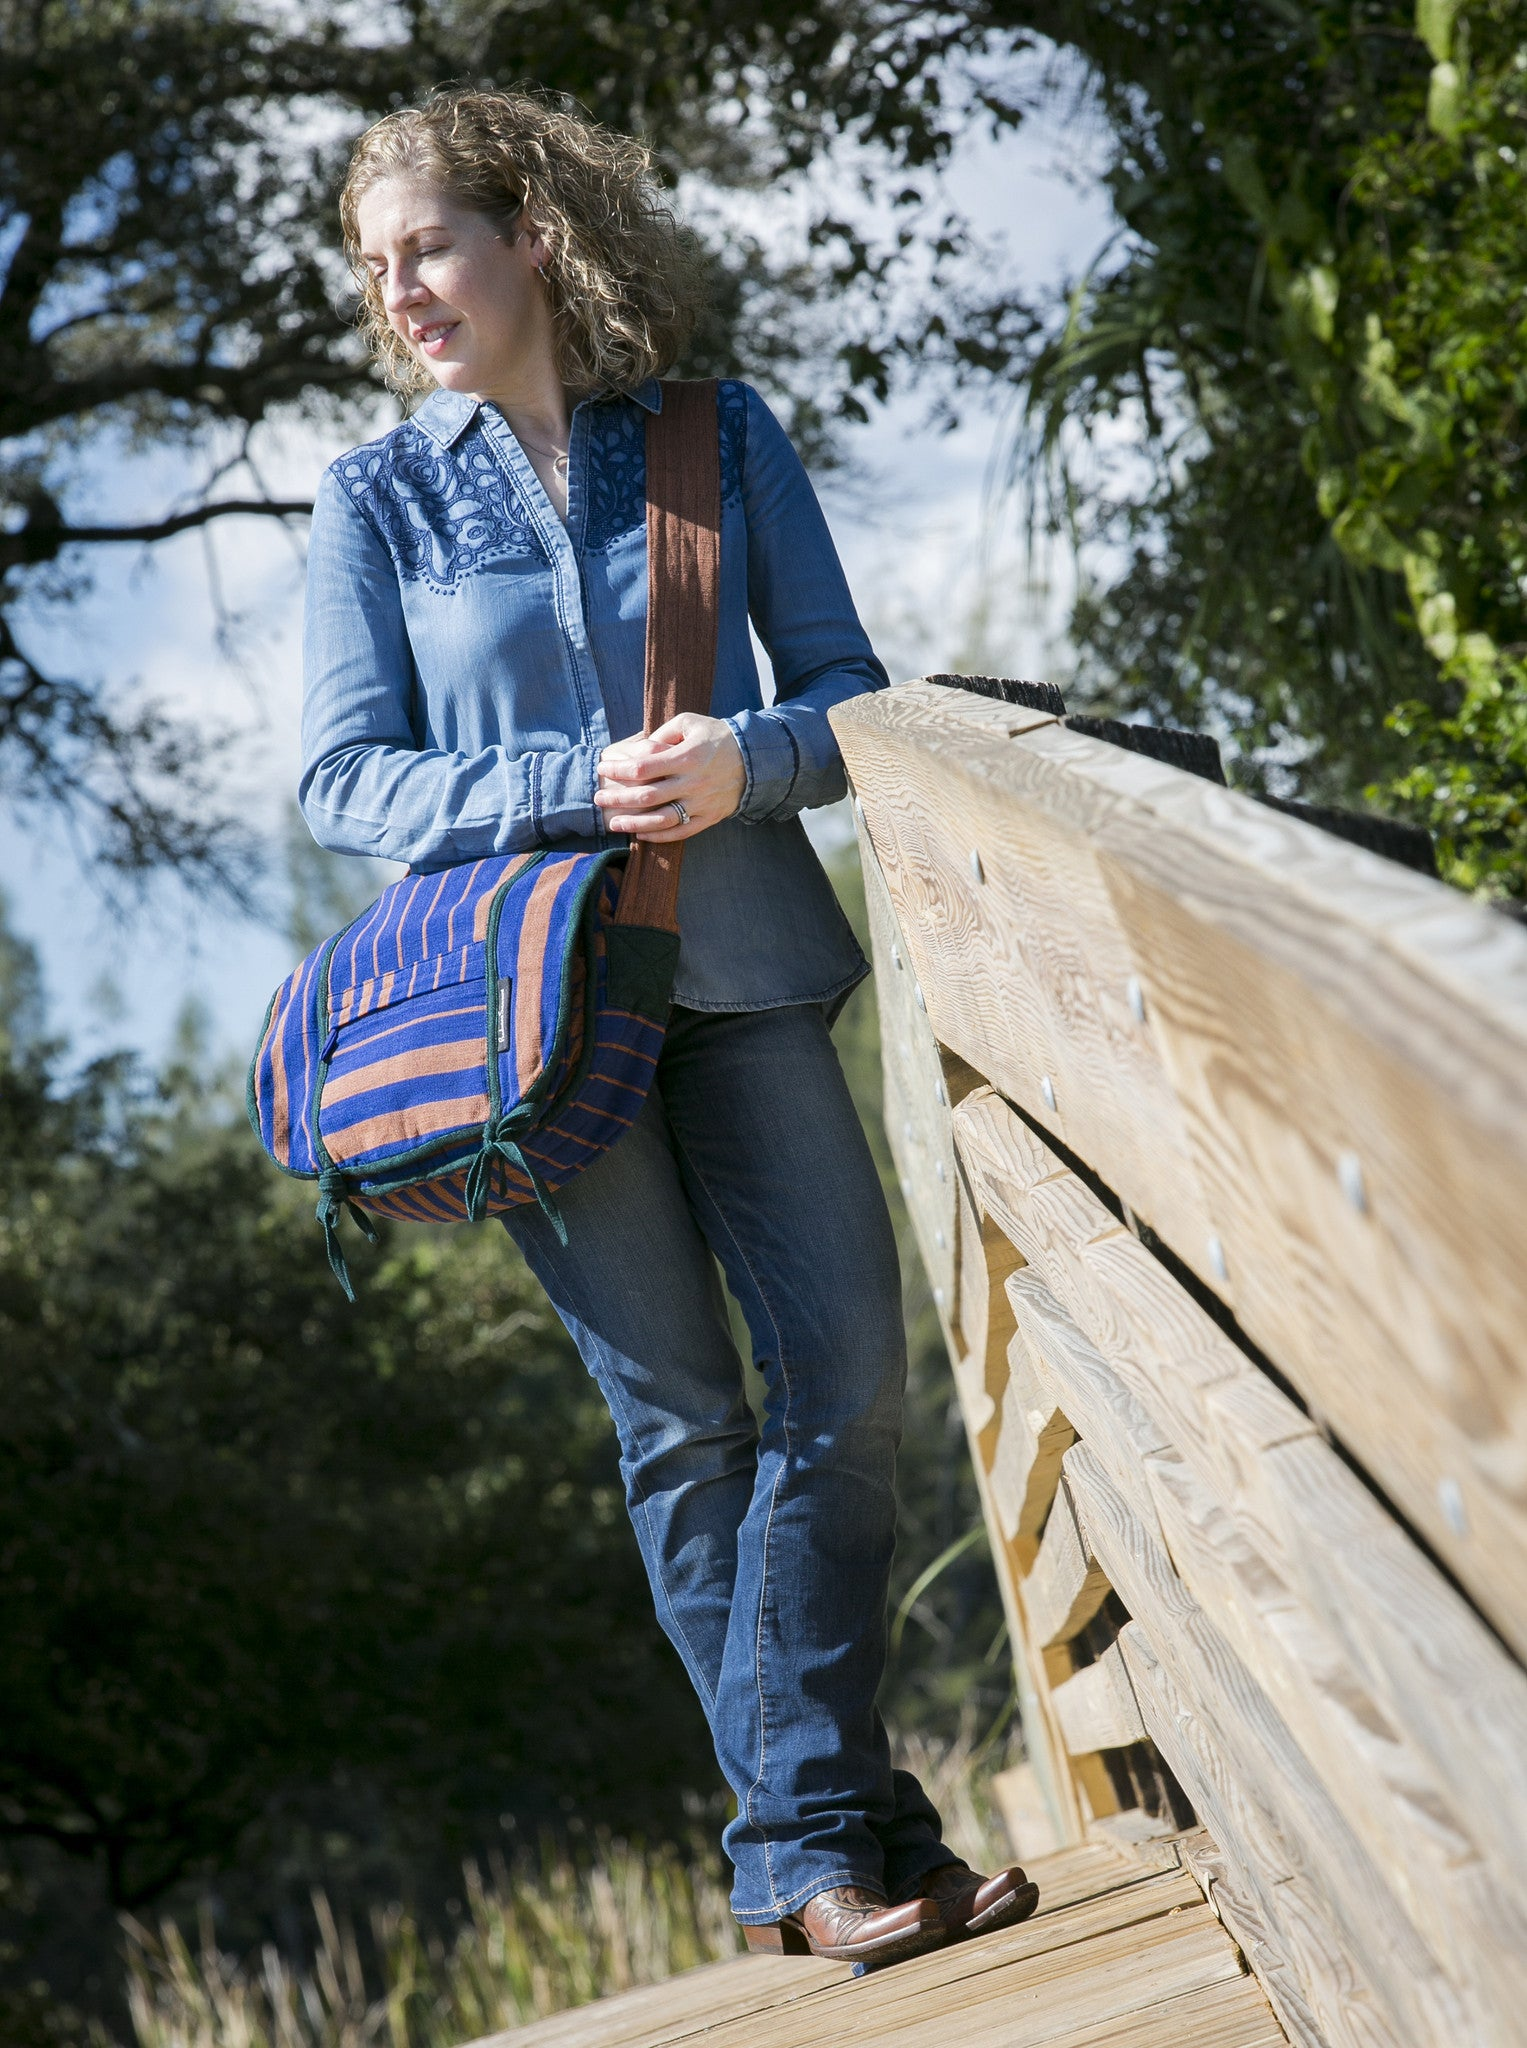 Barefoot Handwoven Messenger Bag – hip and stylish! (sample fabric shown)